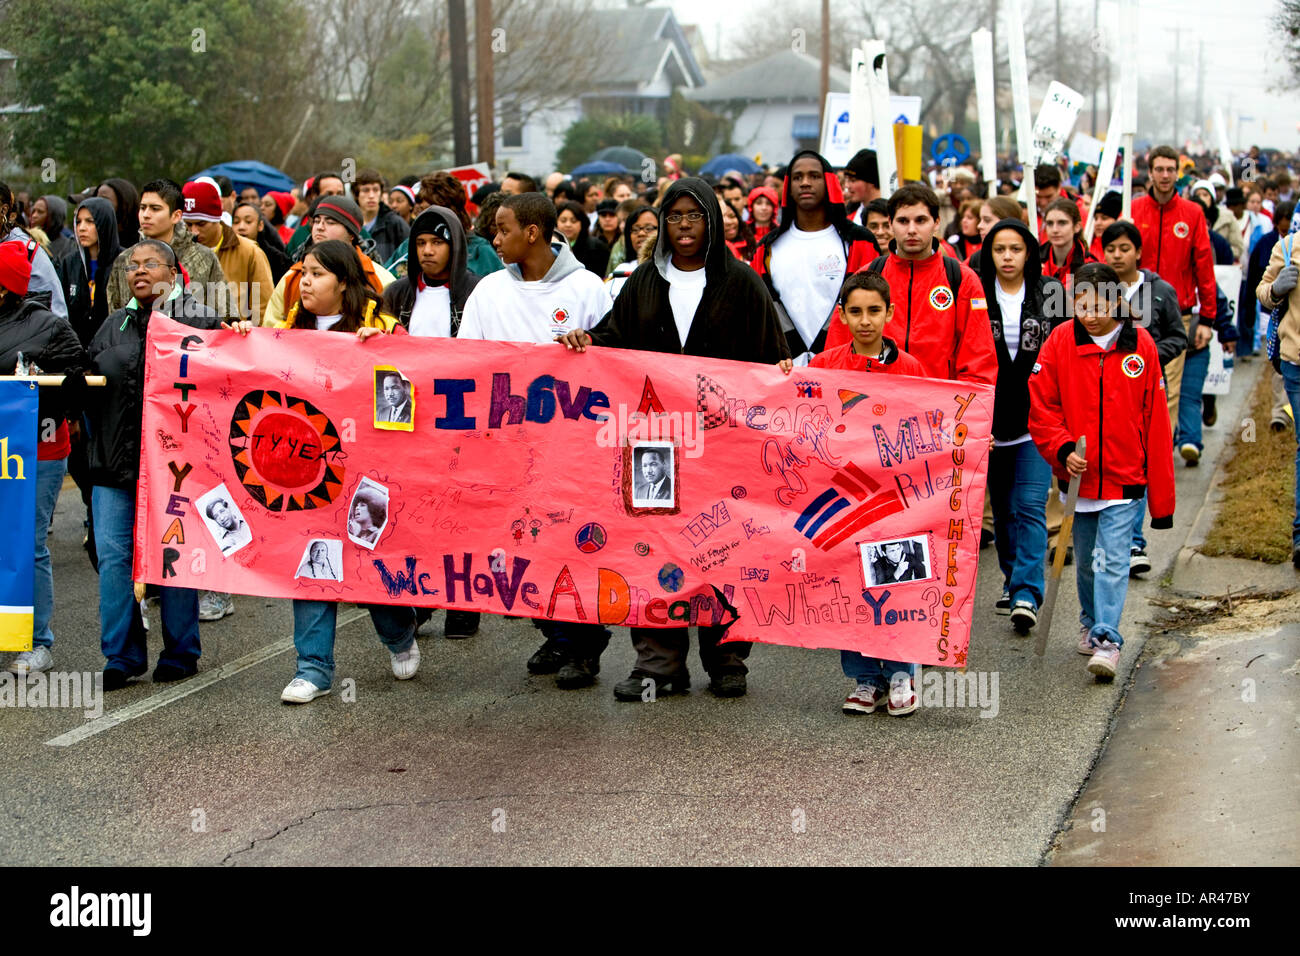 Mlk March Banner In Martin Luther King Parade In San Antonio Texas